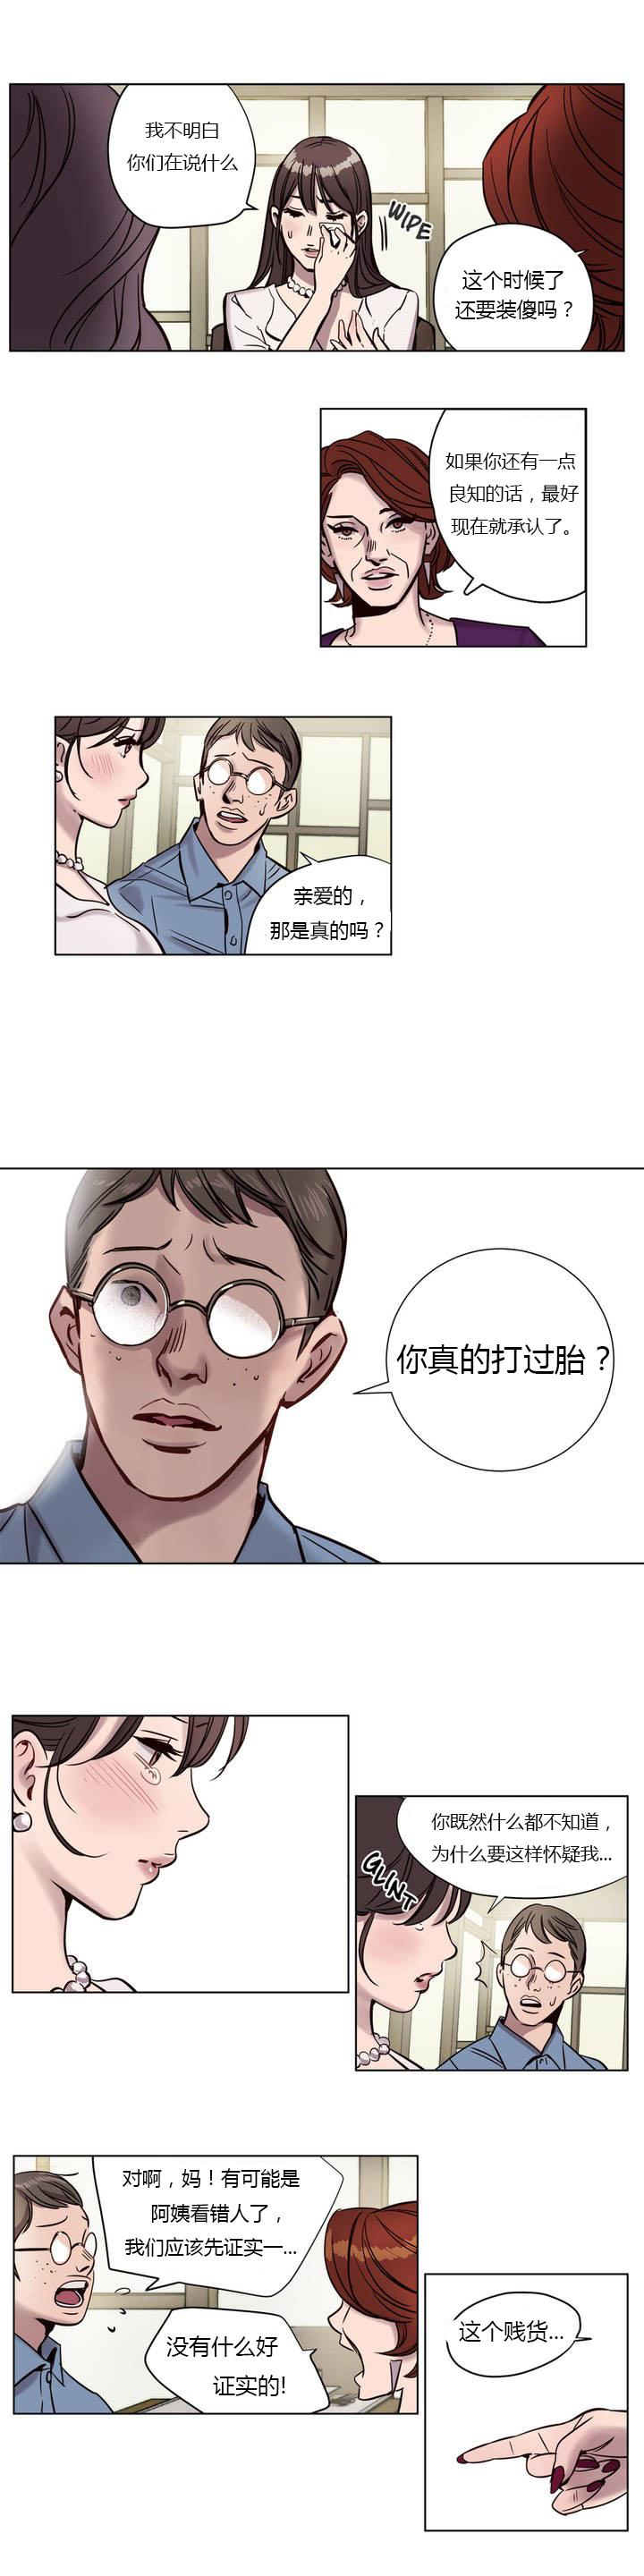 Atonement Camp Ch.0-36 67